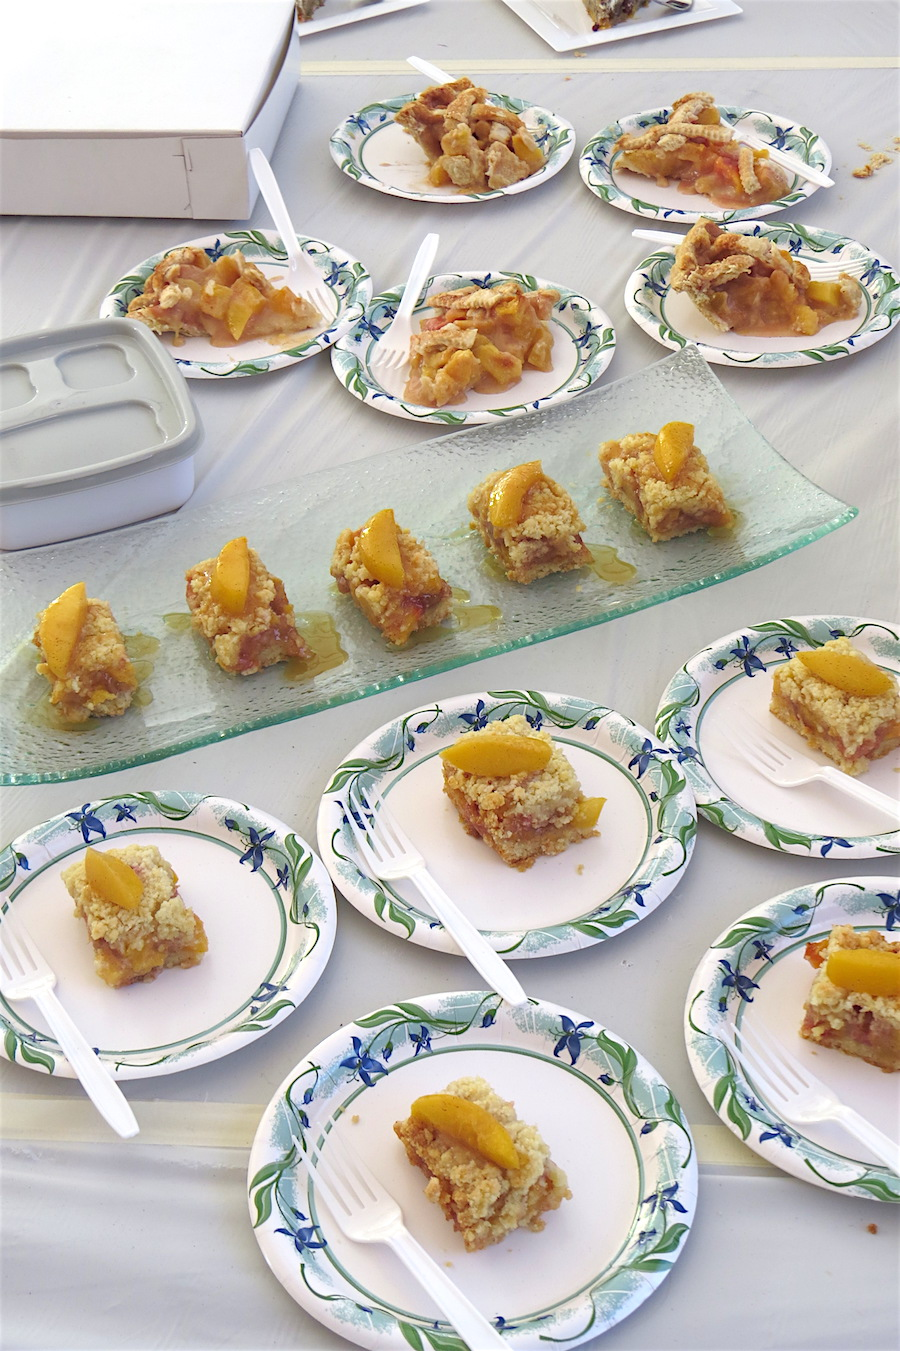 A sampling of peach dishes.